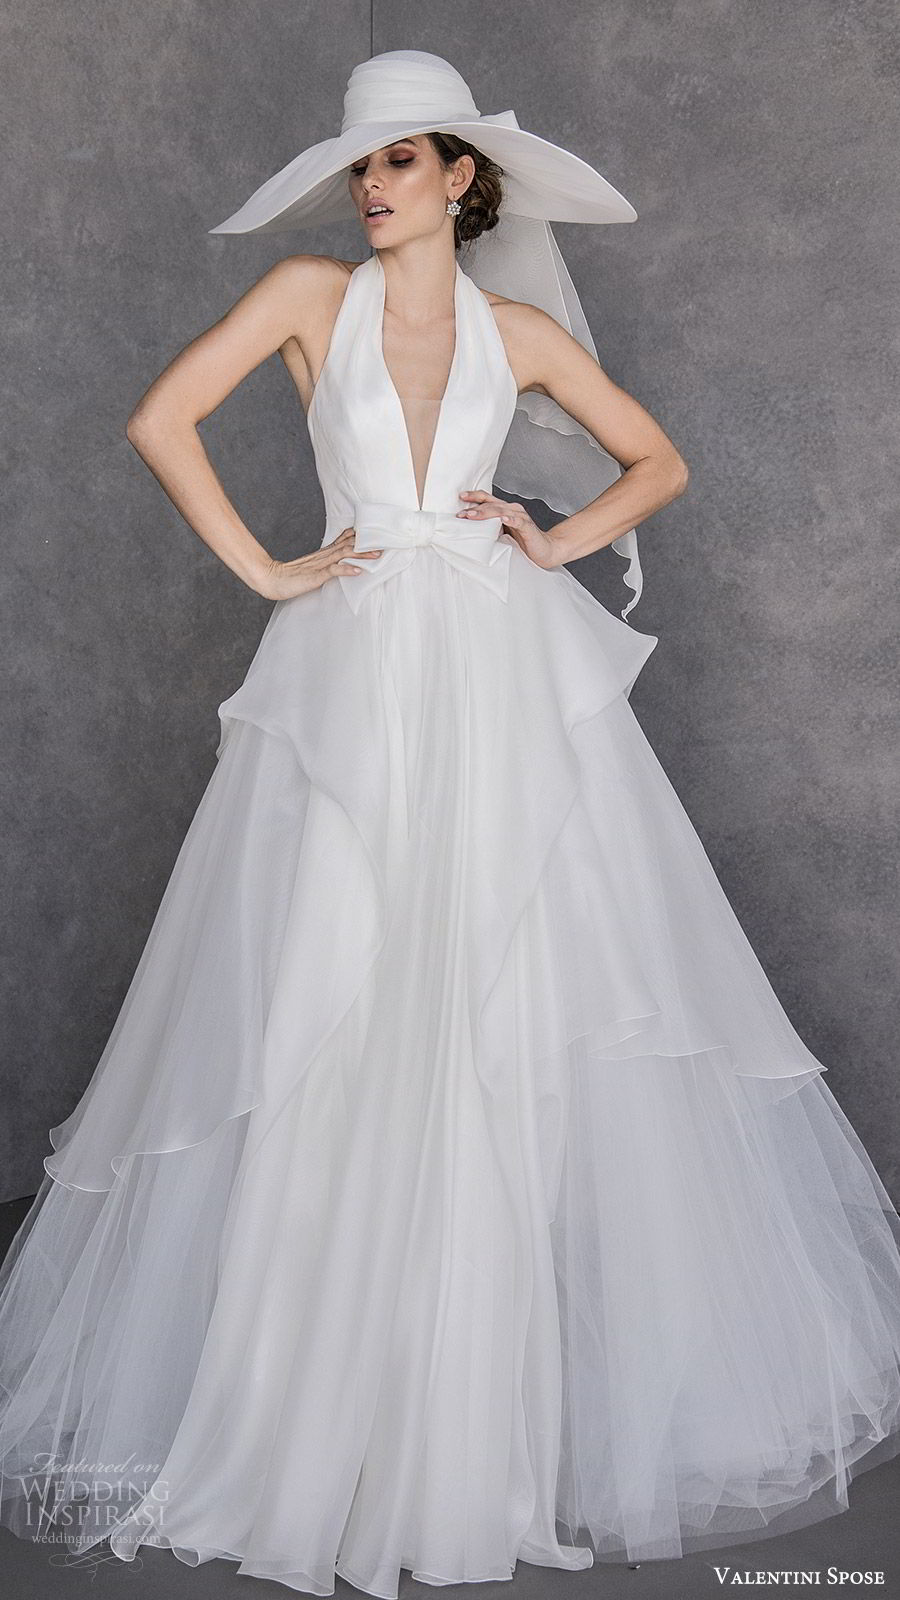 valentini spose spring 2020 bridal sleeveless halter neck deep v neckline a line ball gown wedding dress (23) tiered skirt elegant chic hat chapel train mv